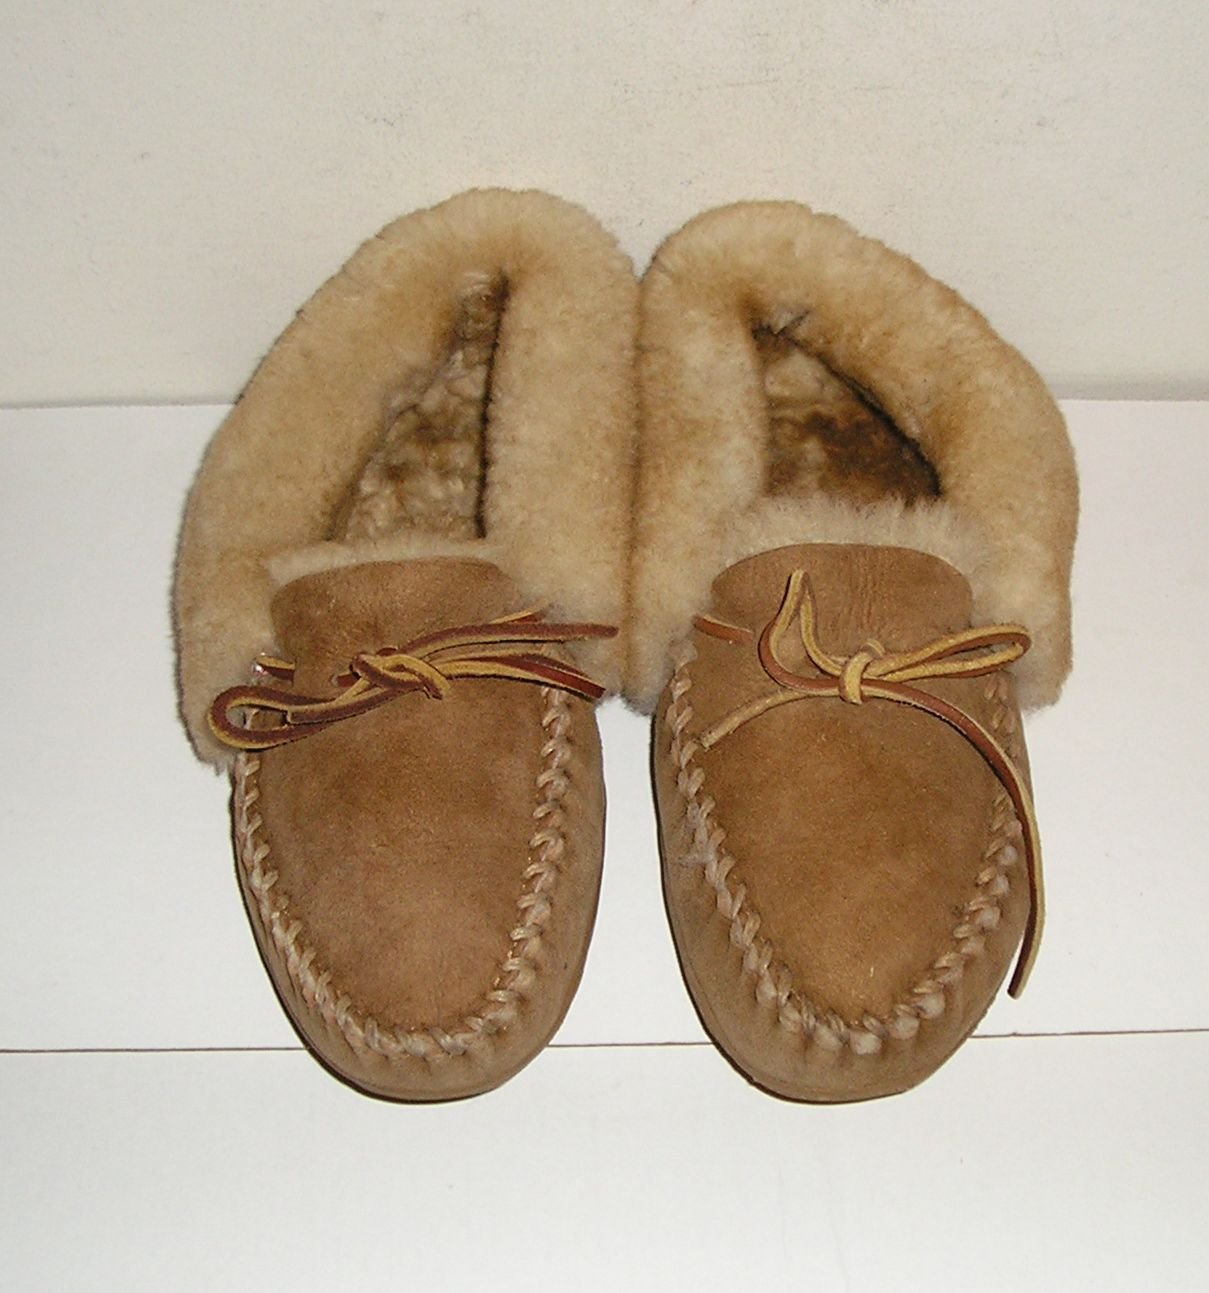 Jun 19, · A pair of women's size 7 duck boot moccasins by L.L. Bean. This pair features navy blue rubber bodies with brown leather trim and laces. from rburbeltoddrick.ga